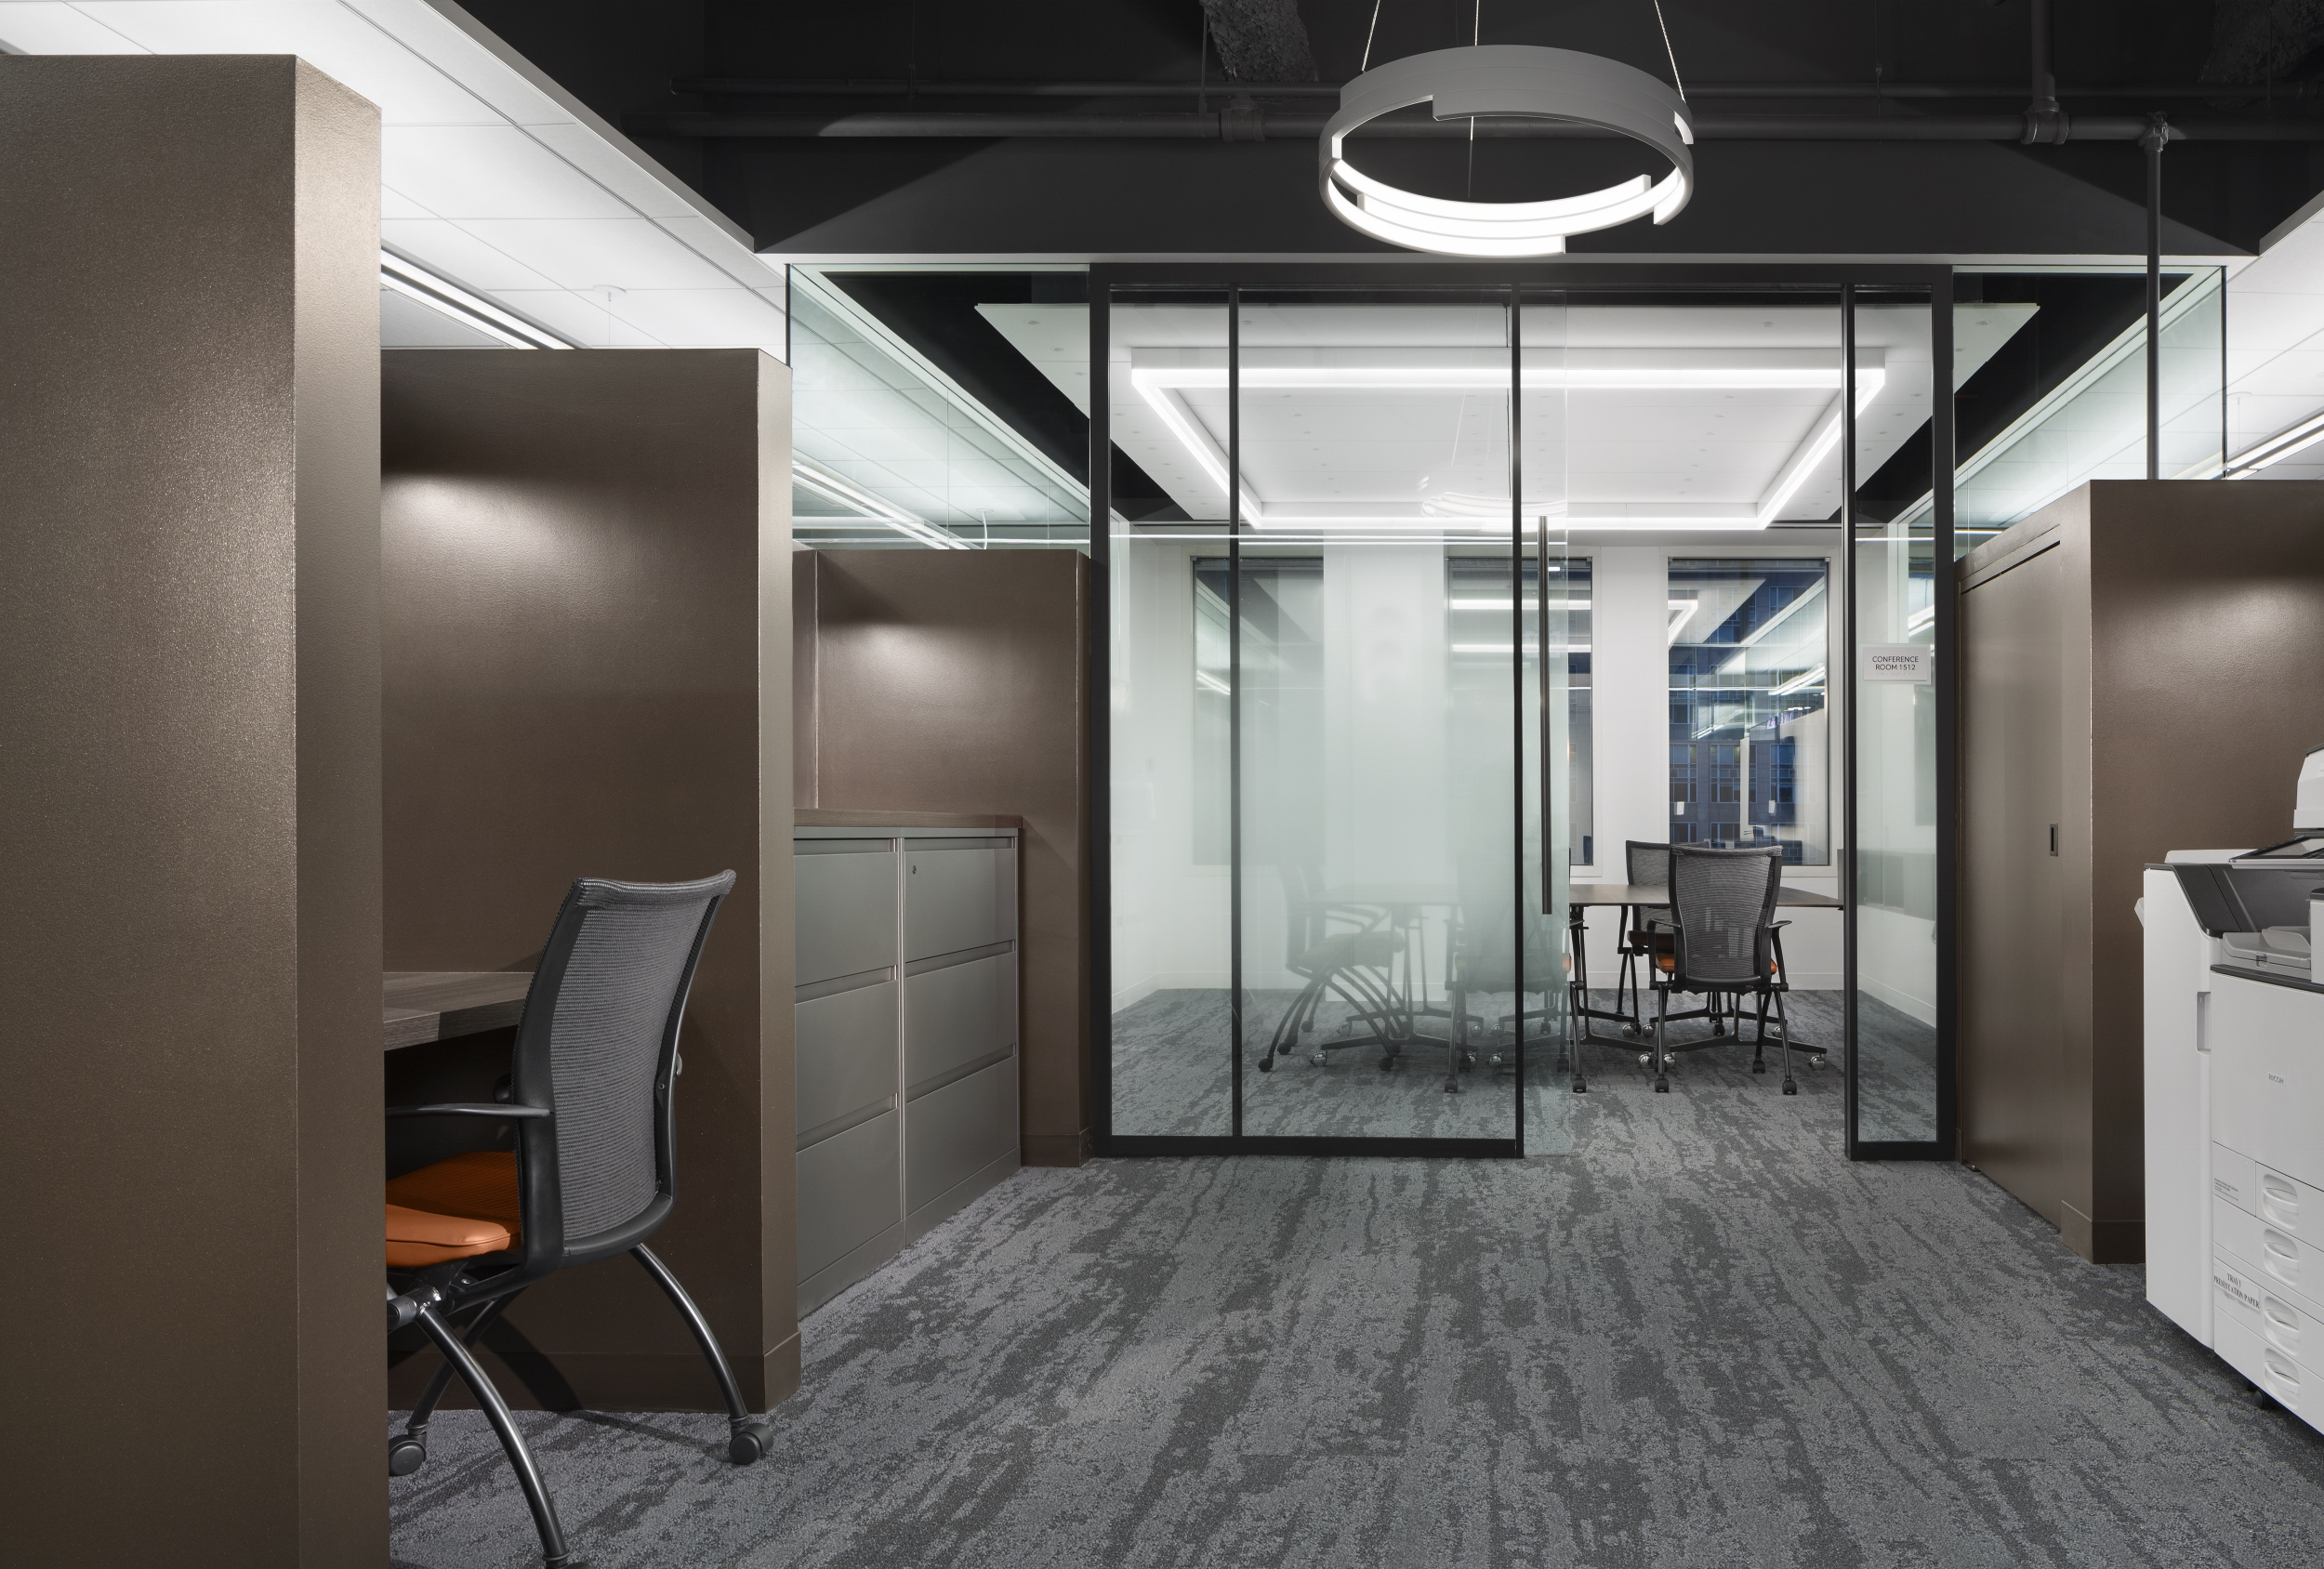 Office interior at Northern Trust, M15 and M23.